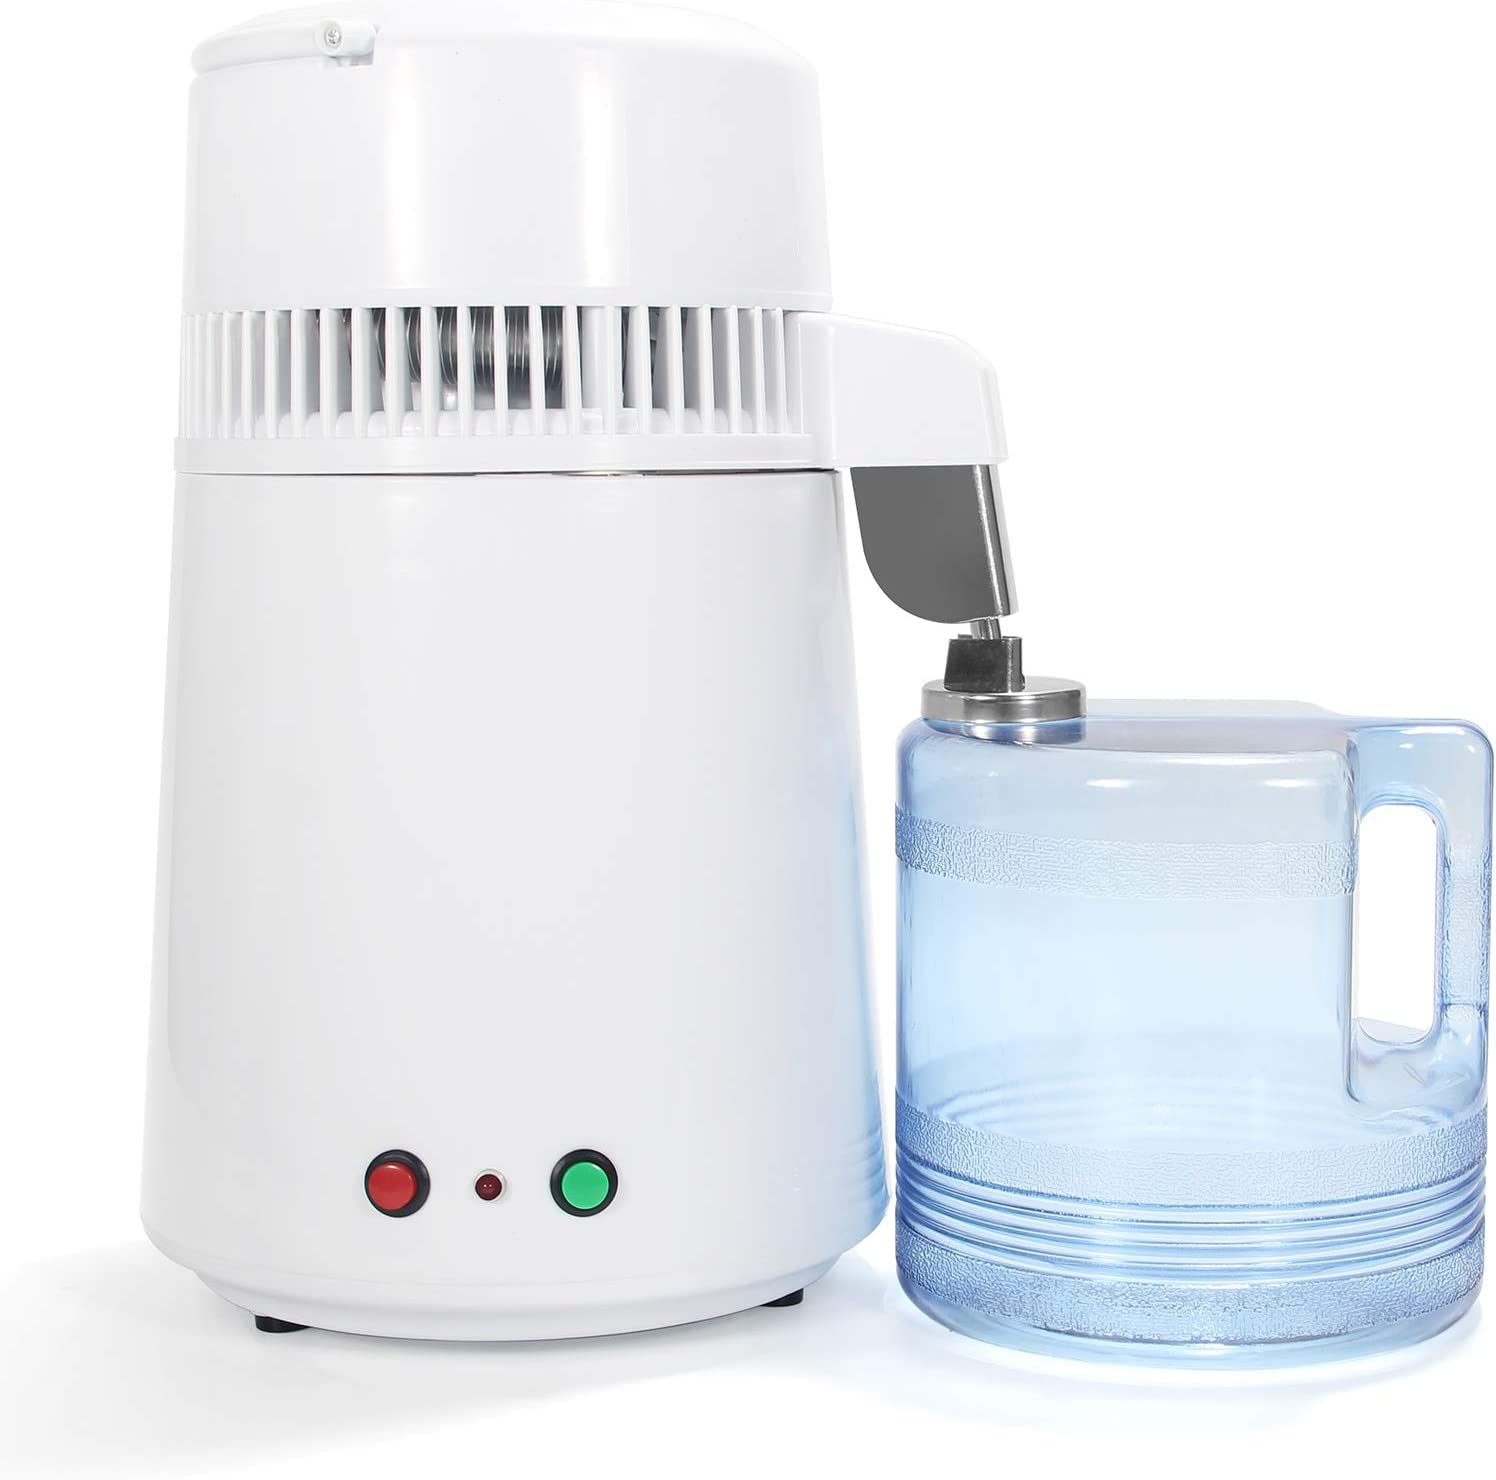 Hanchen 4L/1gal Water Distillers Pure Water Distiller Machine 750W Countertop Water Purifier Floral Water Pure Water Maker for Home Use(110v)